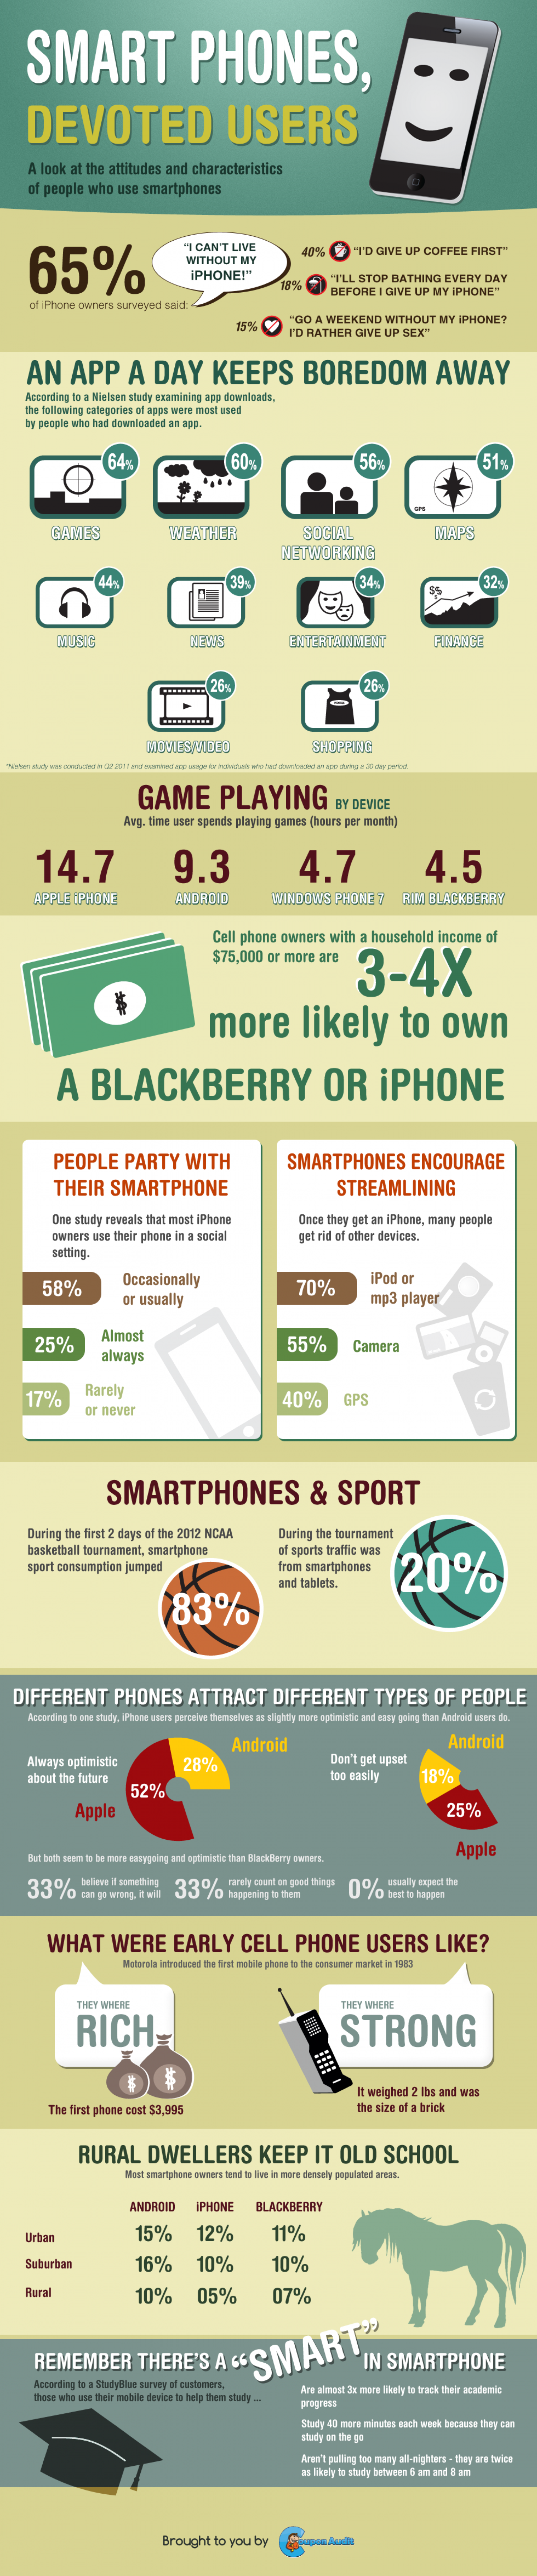 SmartPhones, Devoted Users [Infographic] Infographic